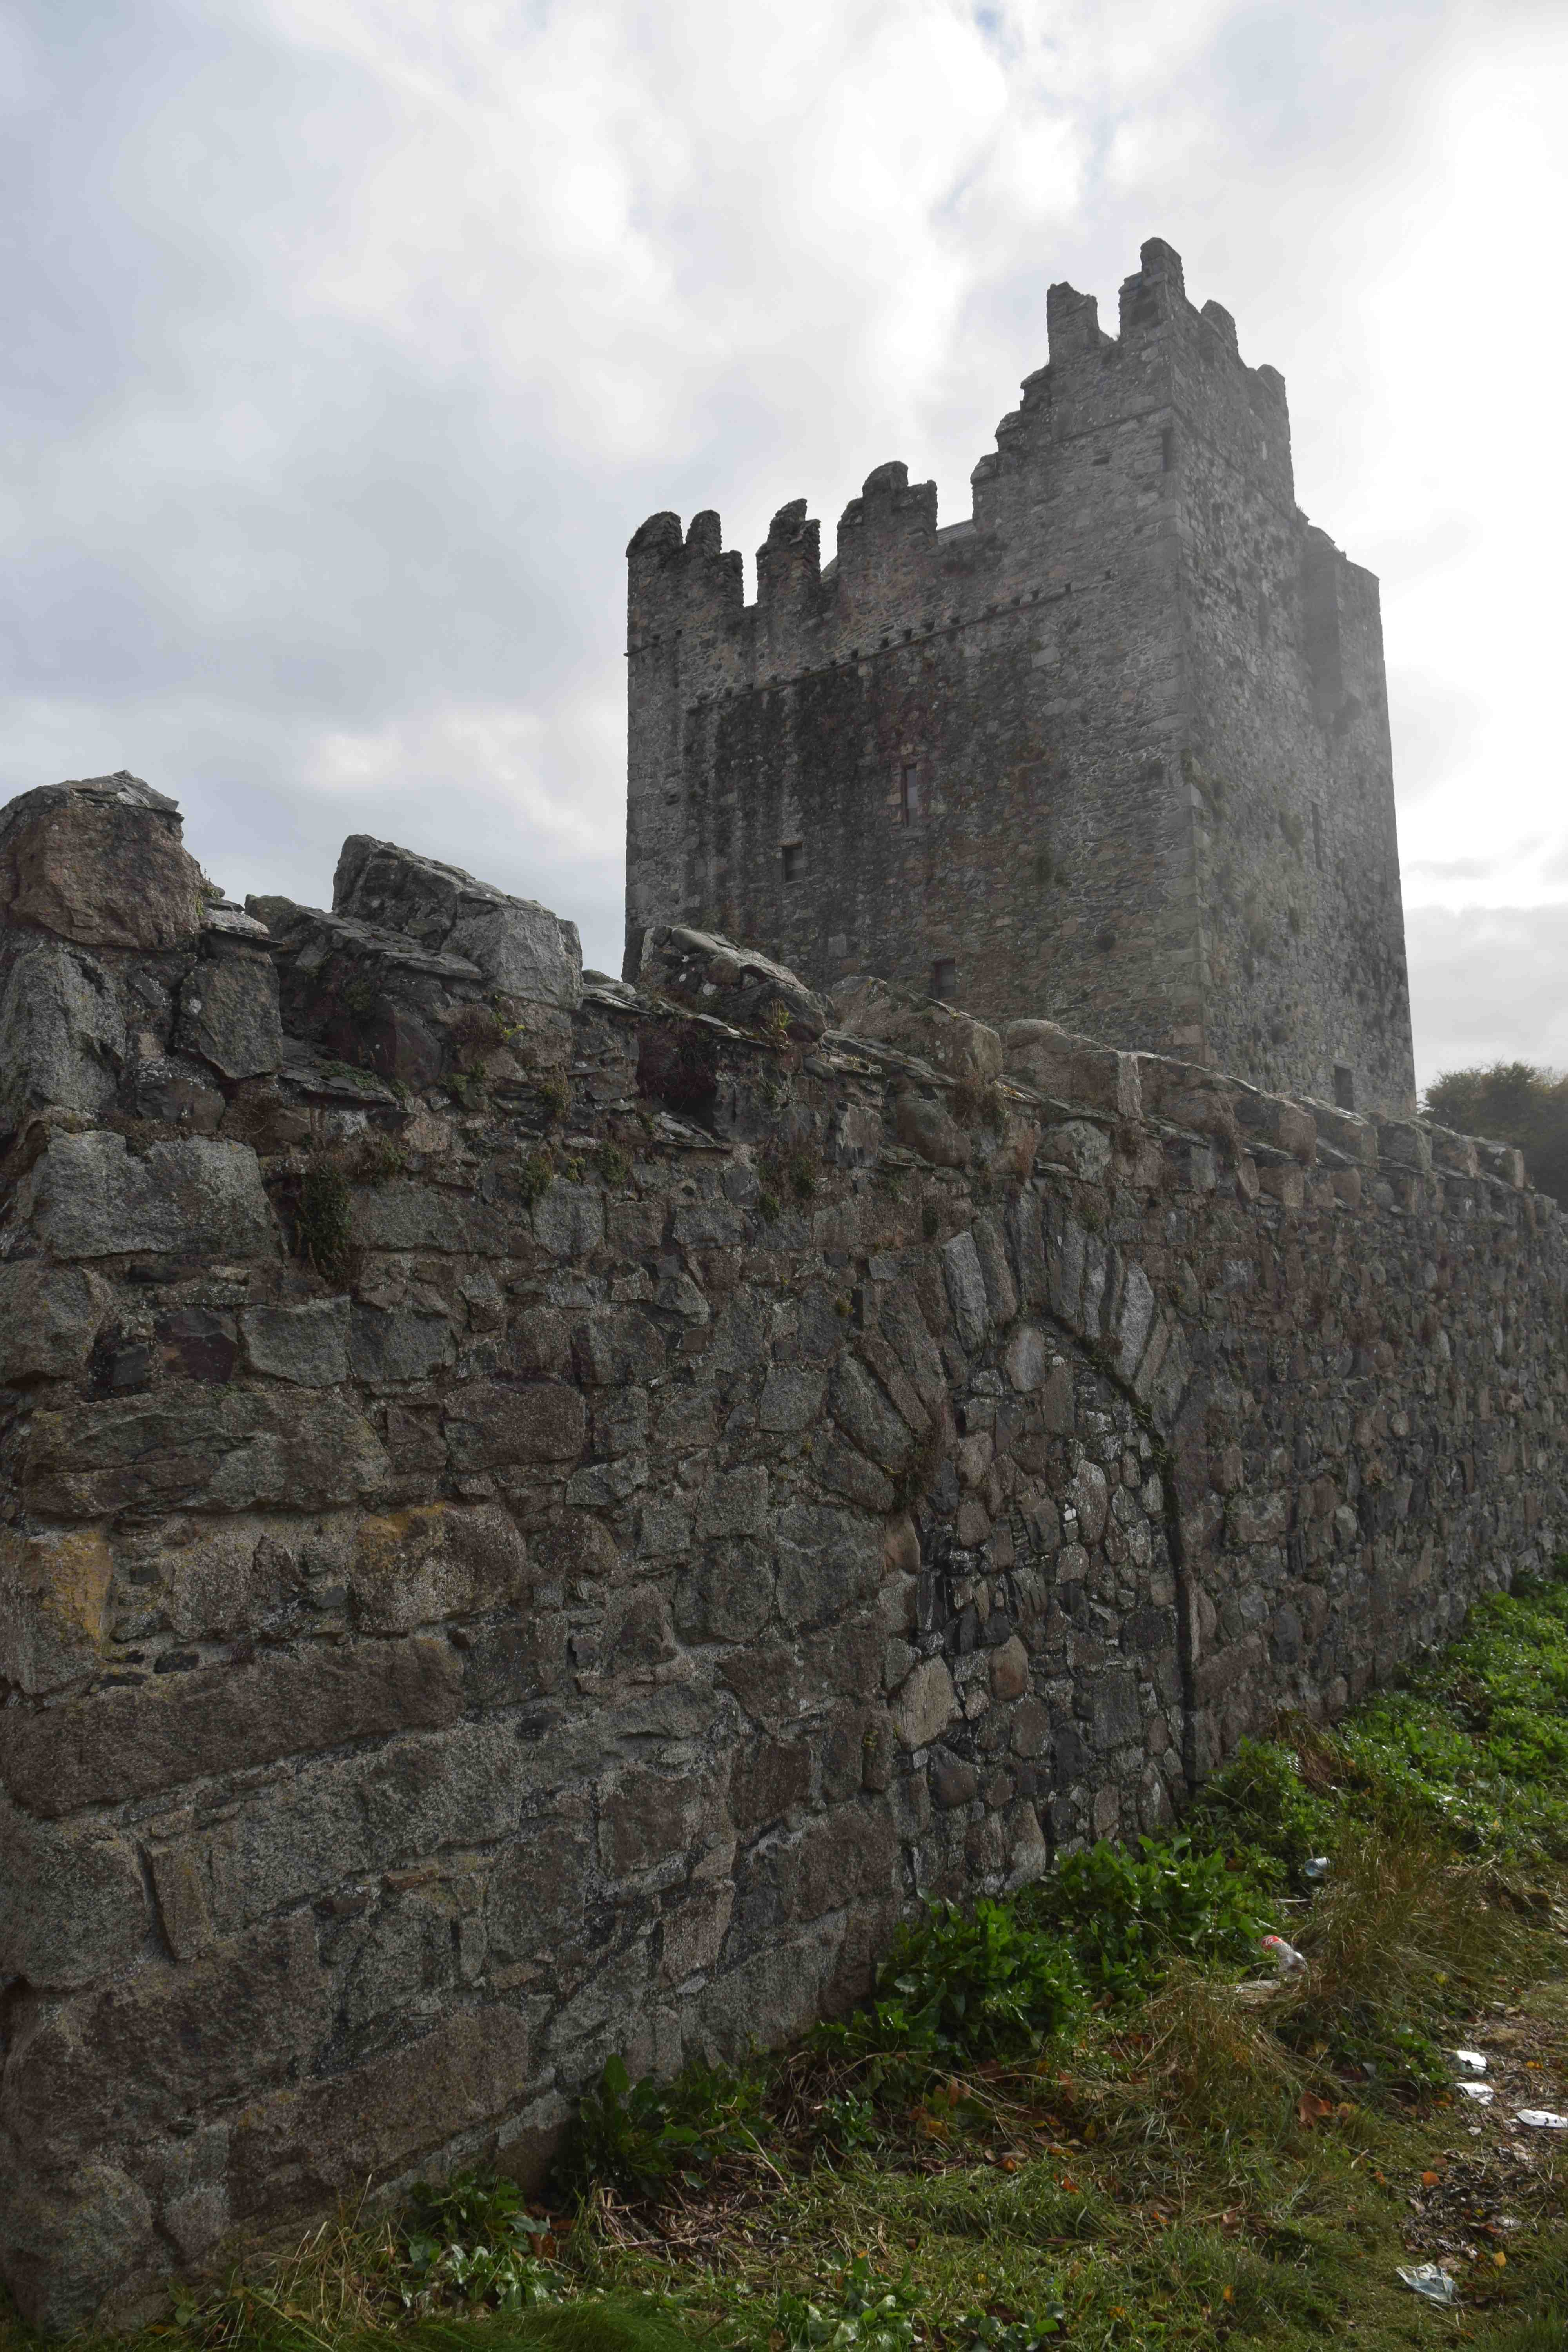 for the attack on british army soldiers in august 1979 by the provisional ira when 18 soldiers were killed in an ambush the greatest single loss of - Single Wall Castle 2015